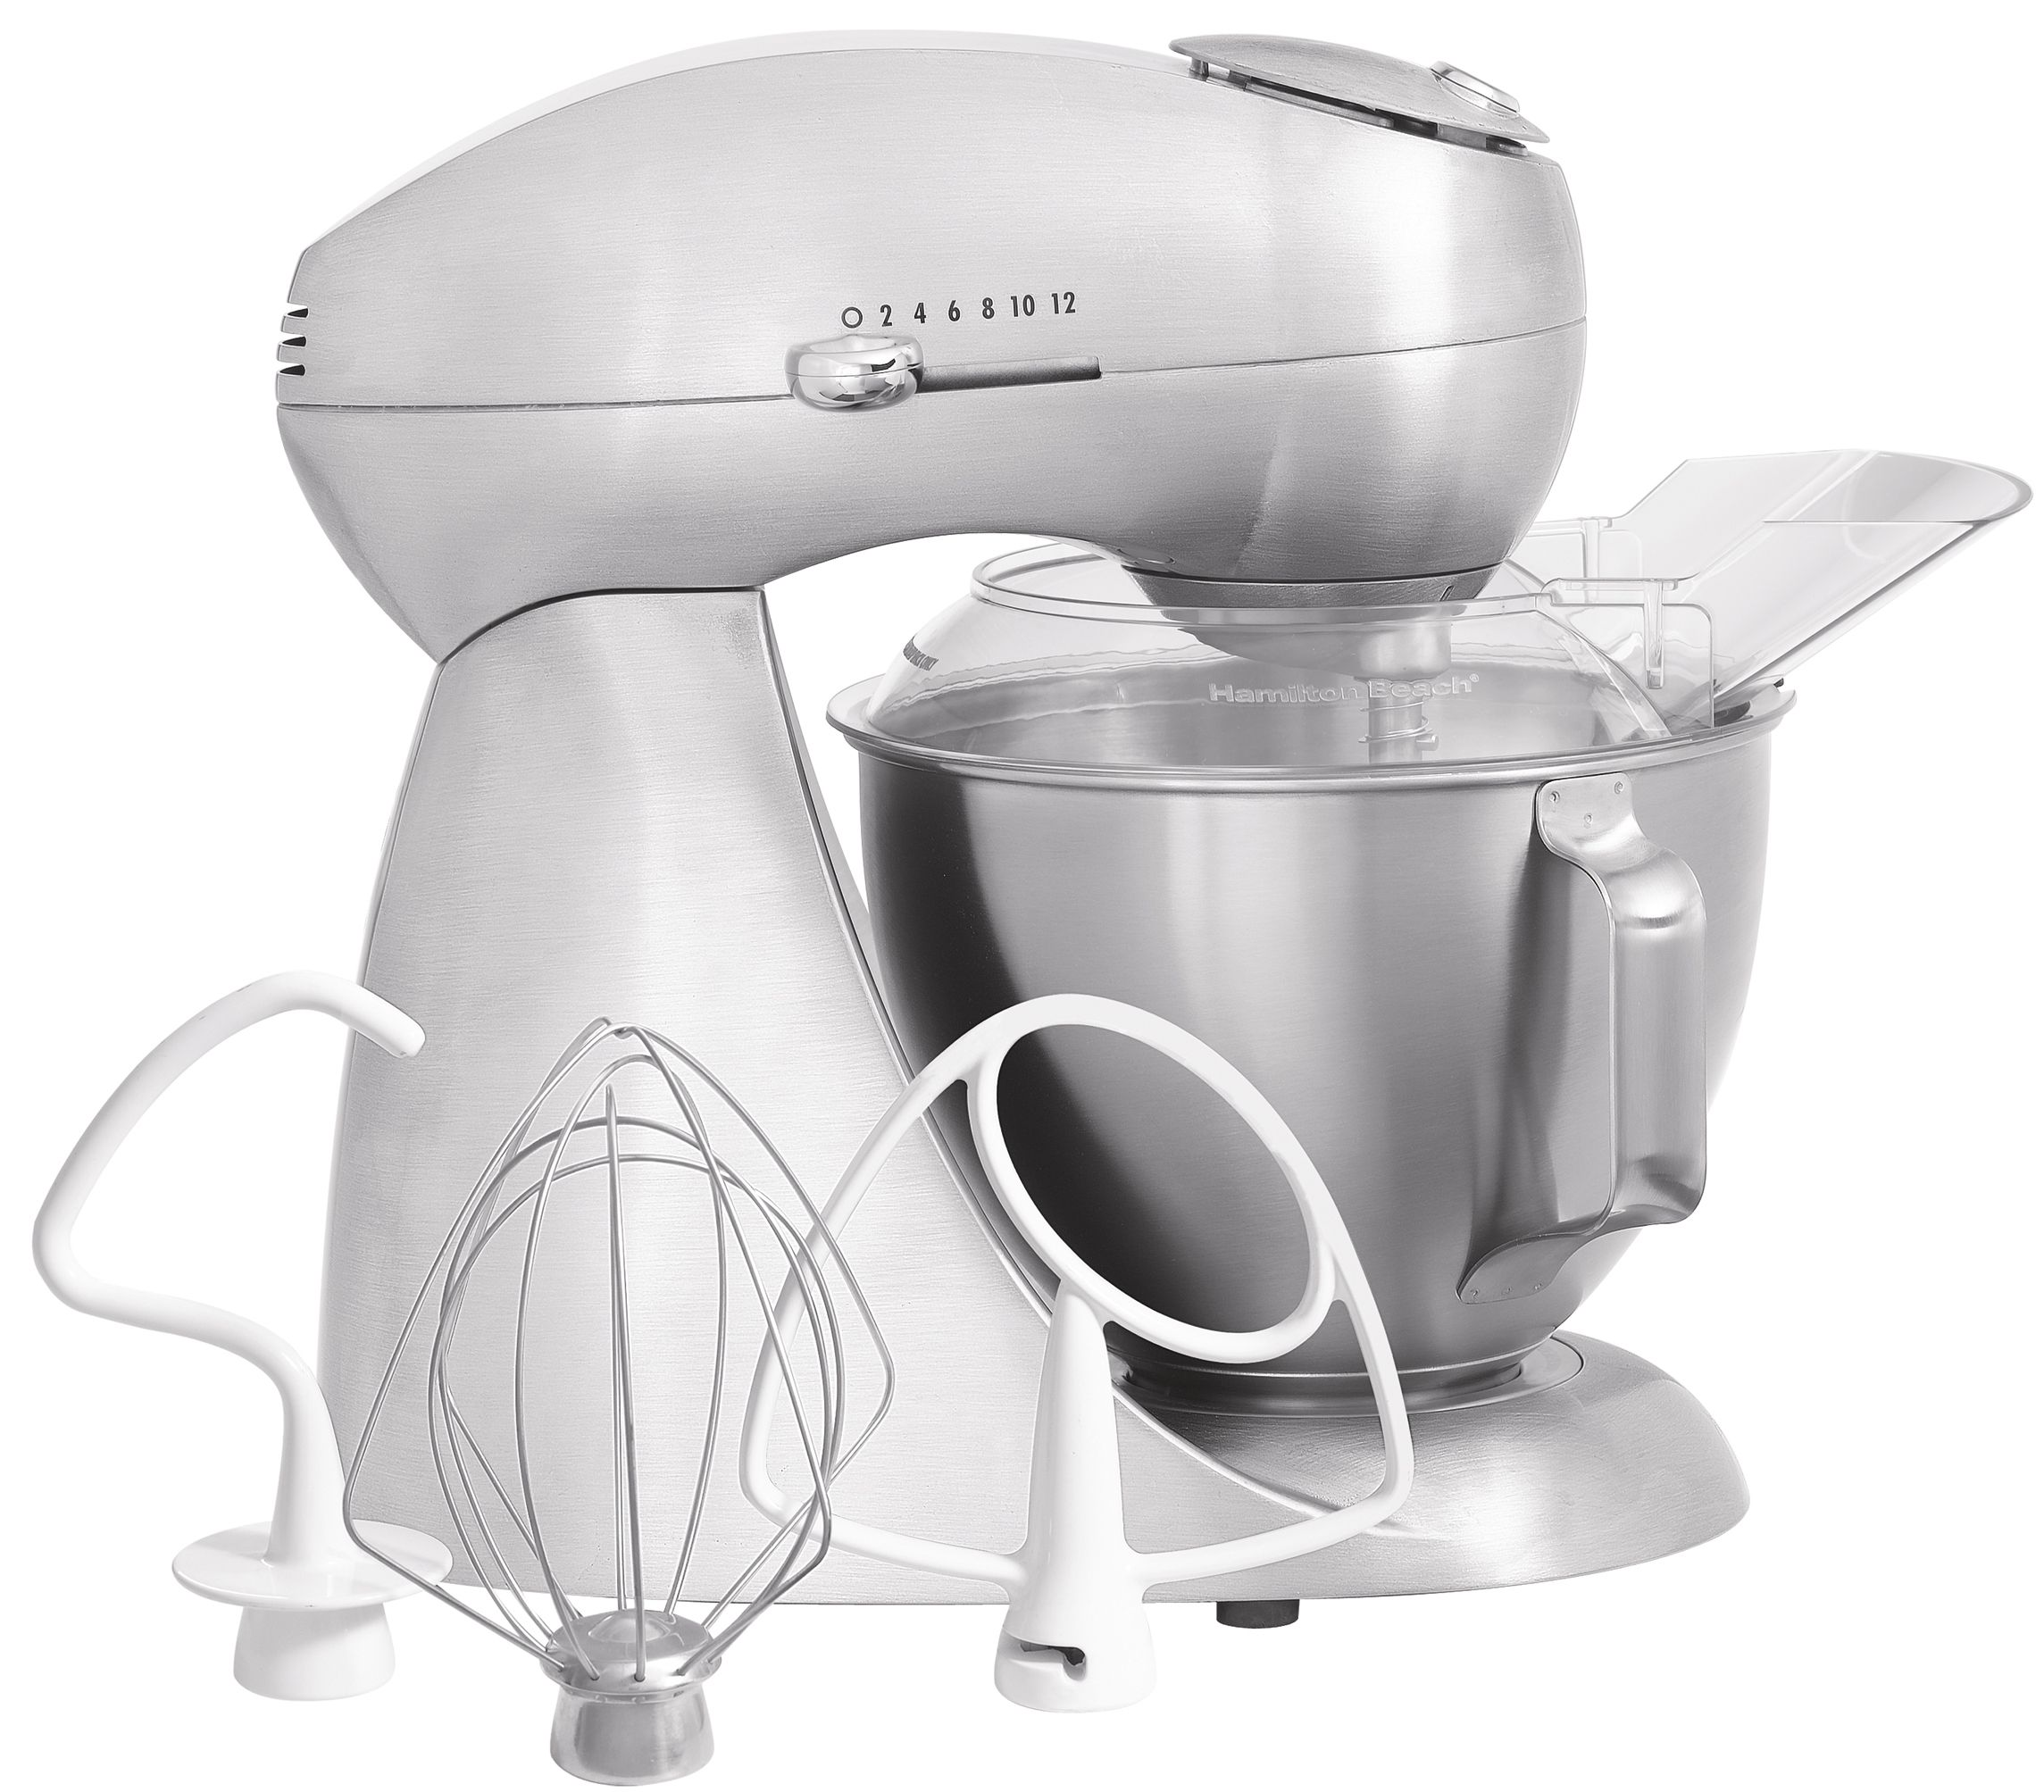 Küchengeräte Premiere Hamilton Beach Eclectrics 12 Speed Stand Mixer 63221 63220